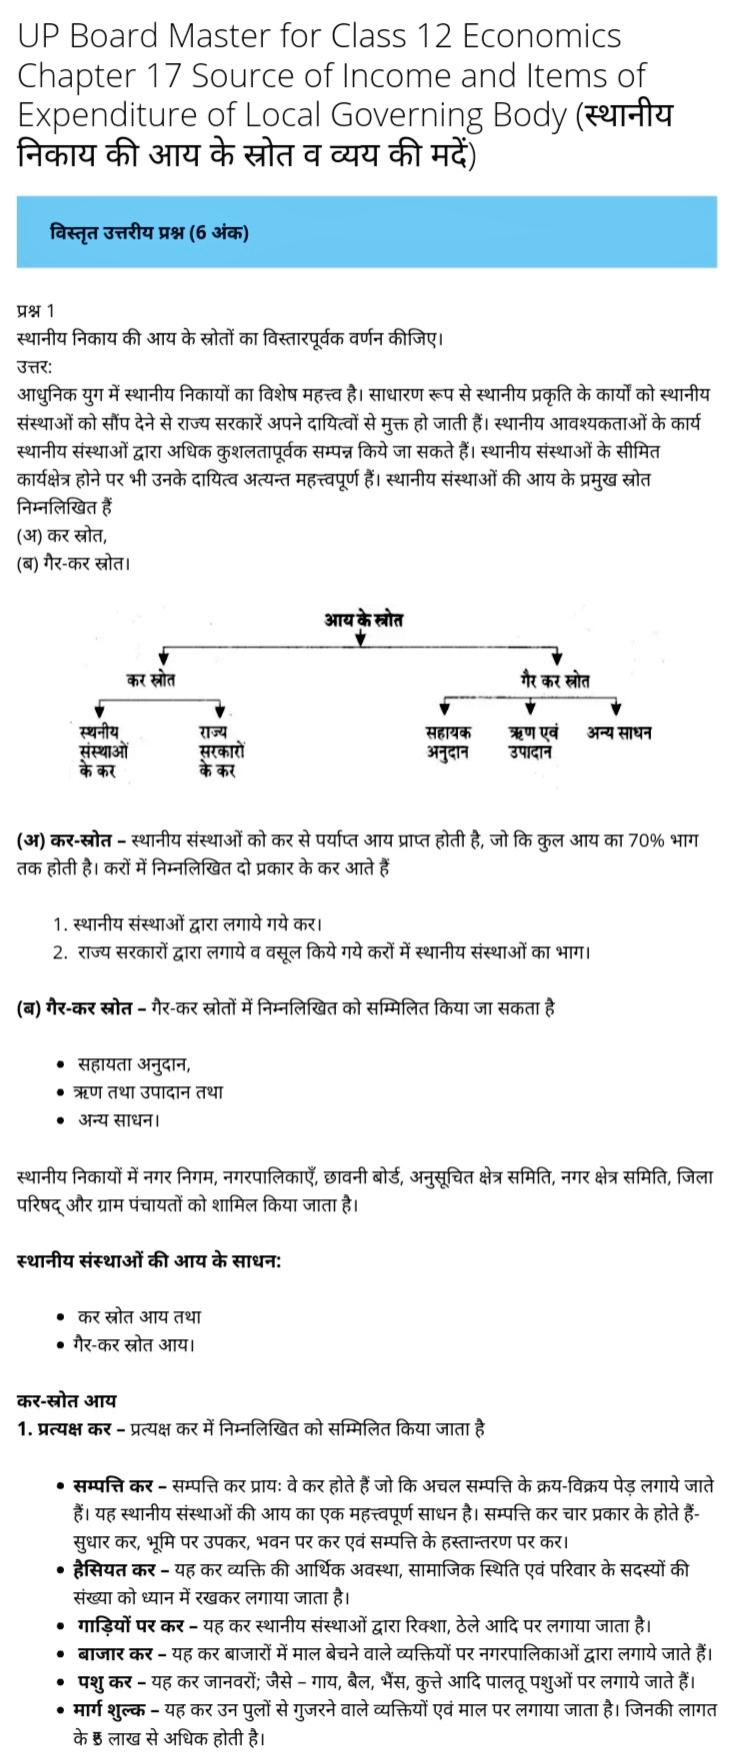 UP Board Solutions for Class 12 Economics Chapter 17 Source of Income and Items of Expenditure of Local Governing Body (स्थानीय निकाय की आय के स्रोत व व्यय की मदें)